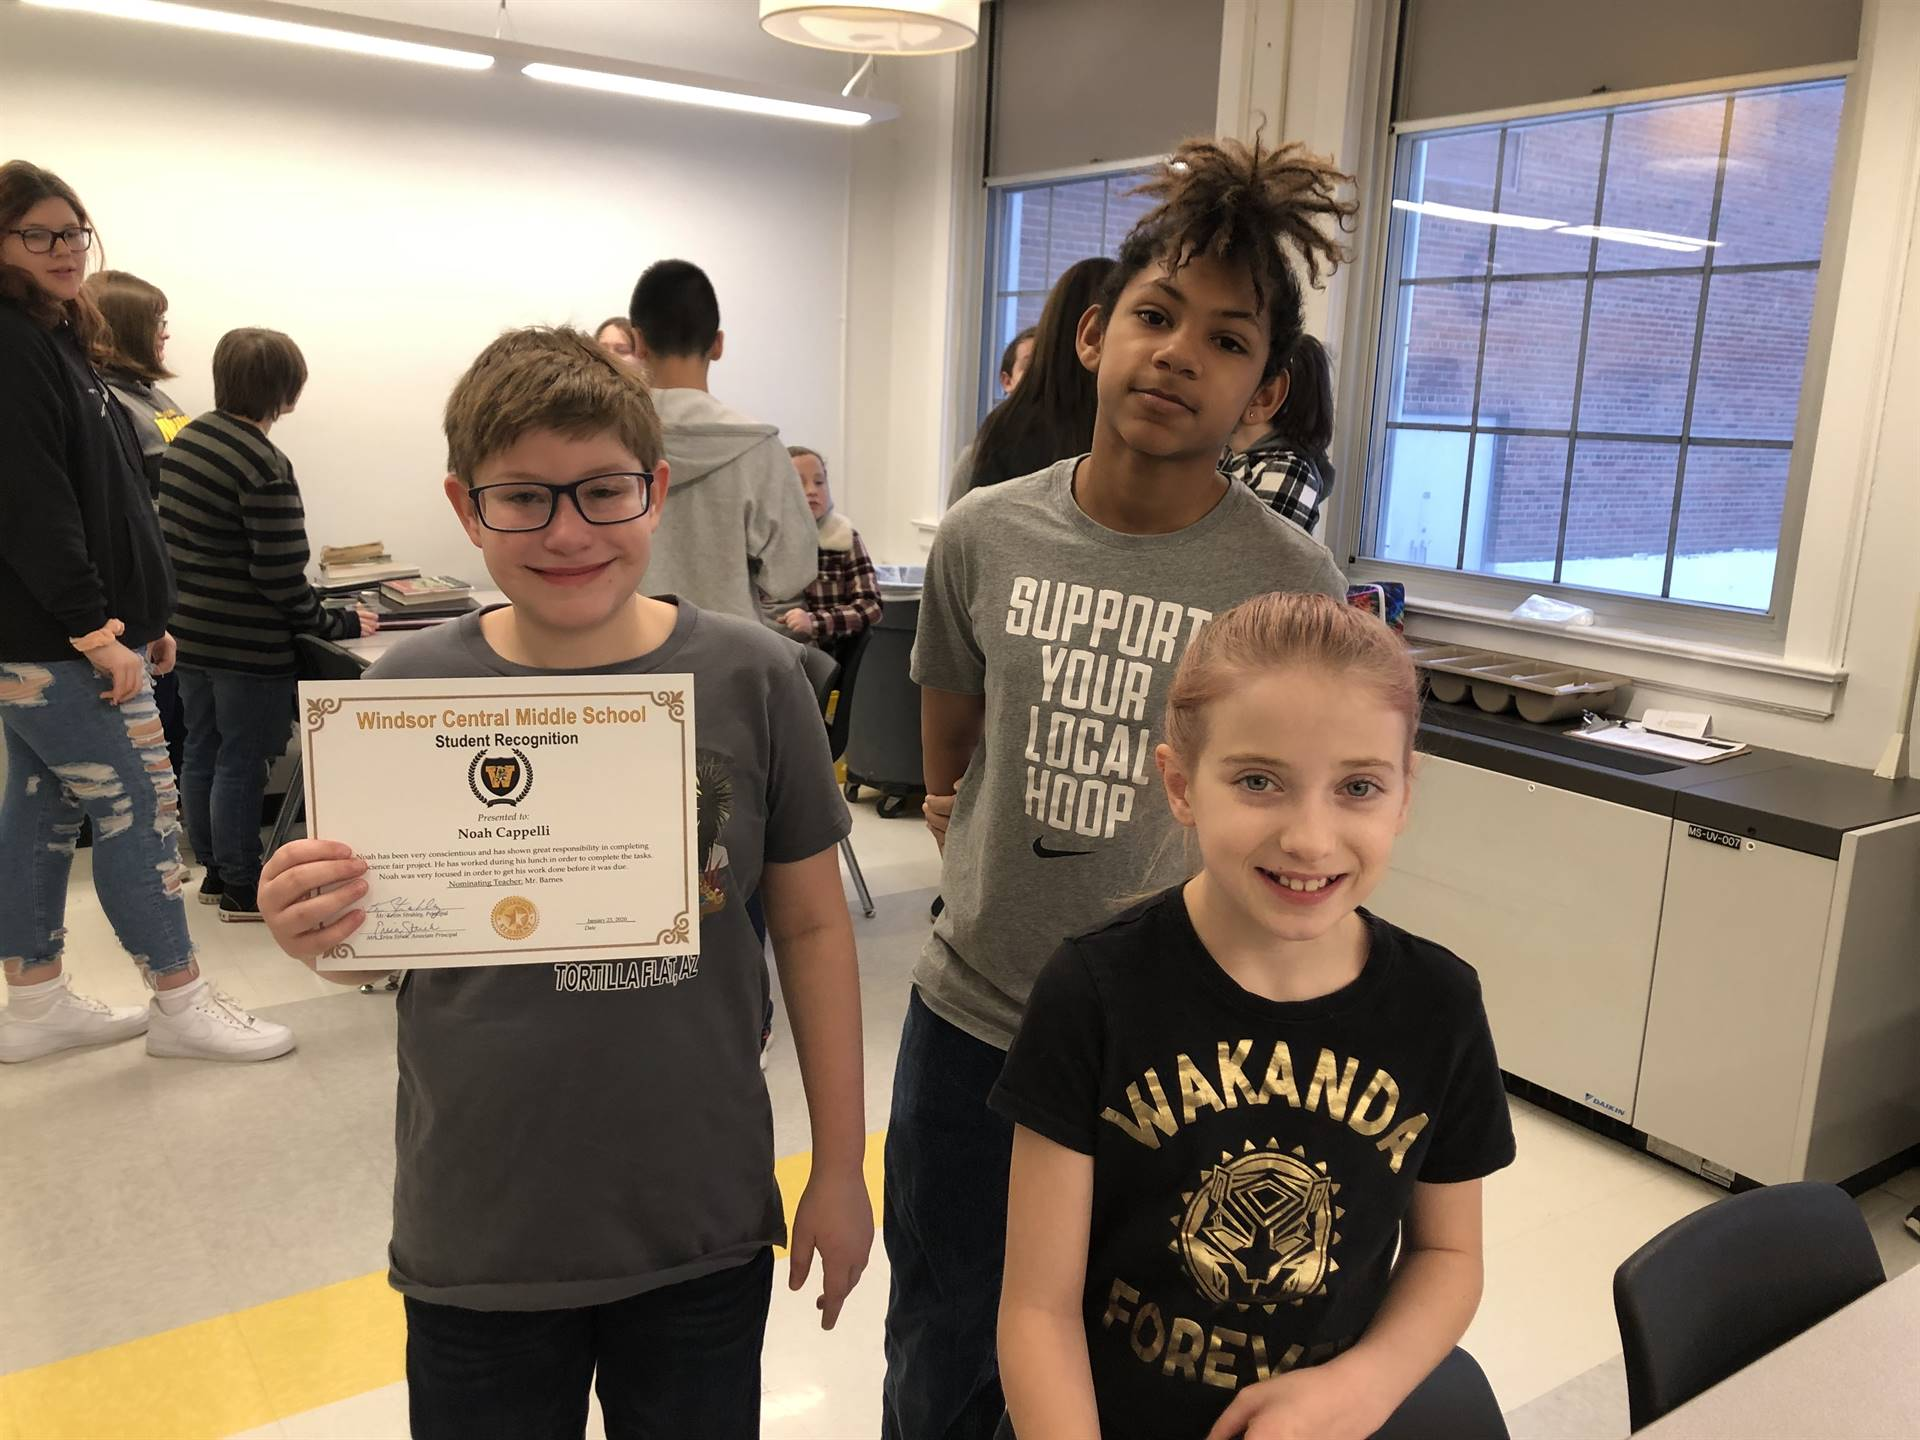 Two boys, one holding a certificate, and a girl standing